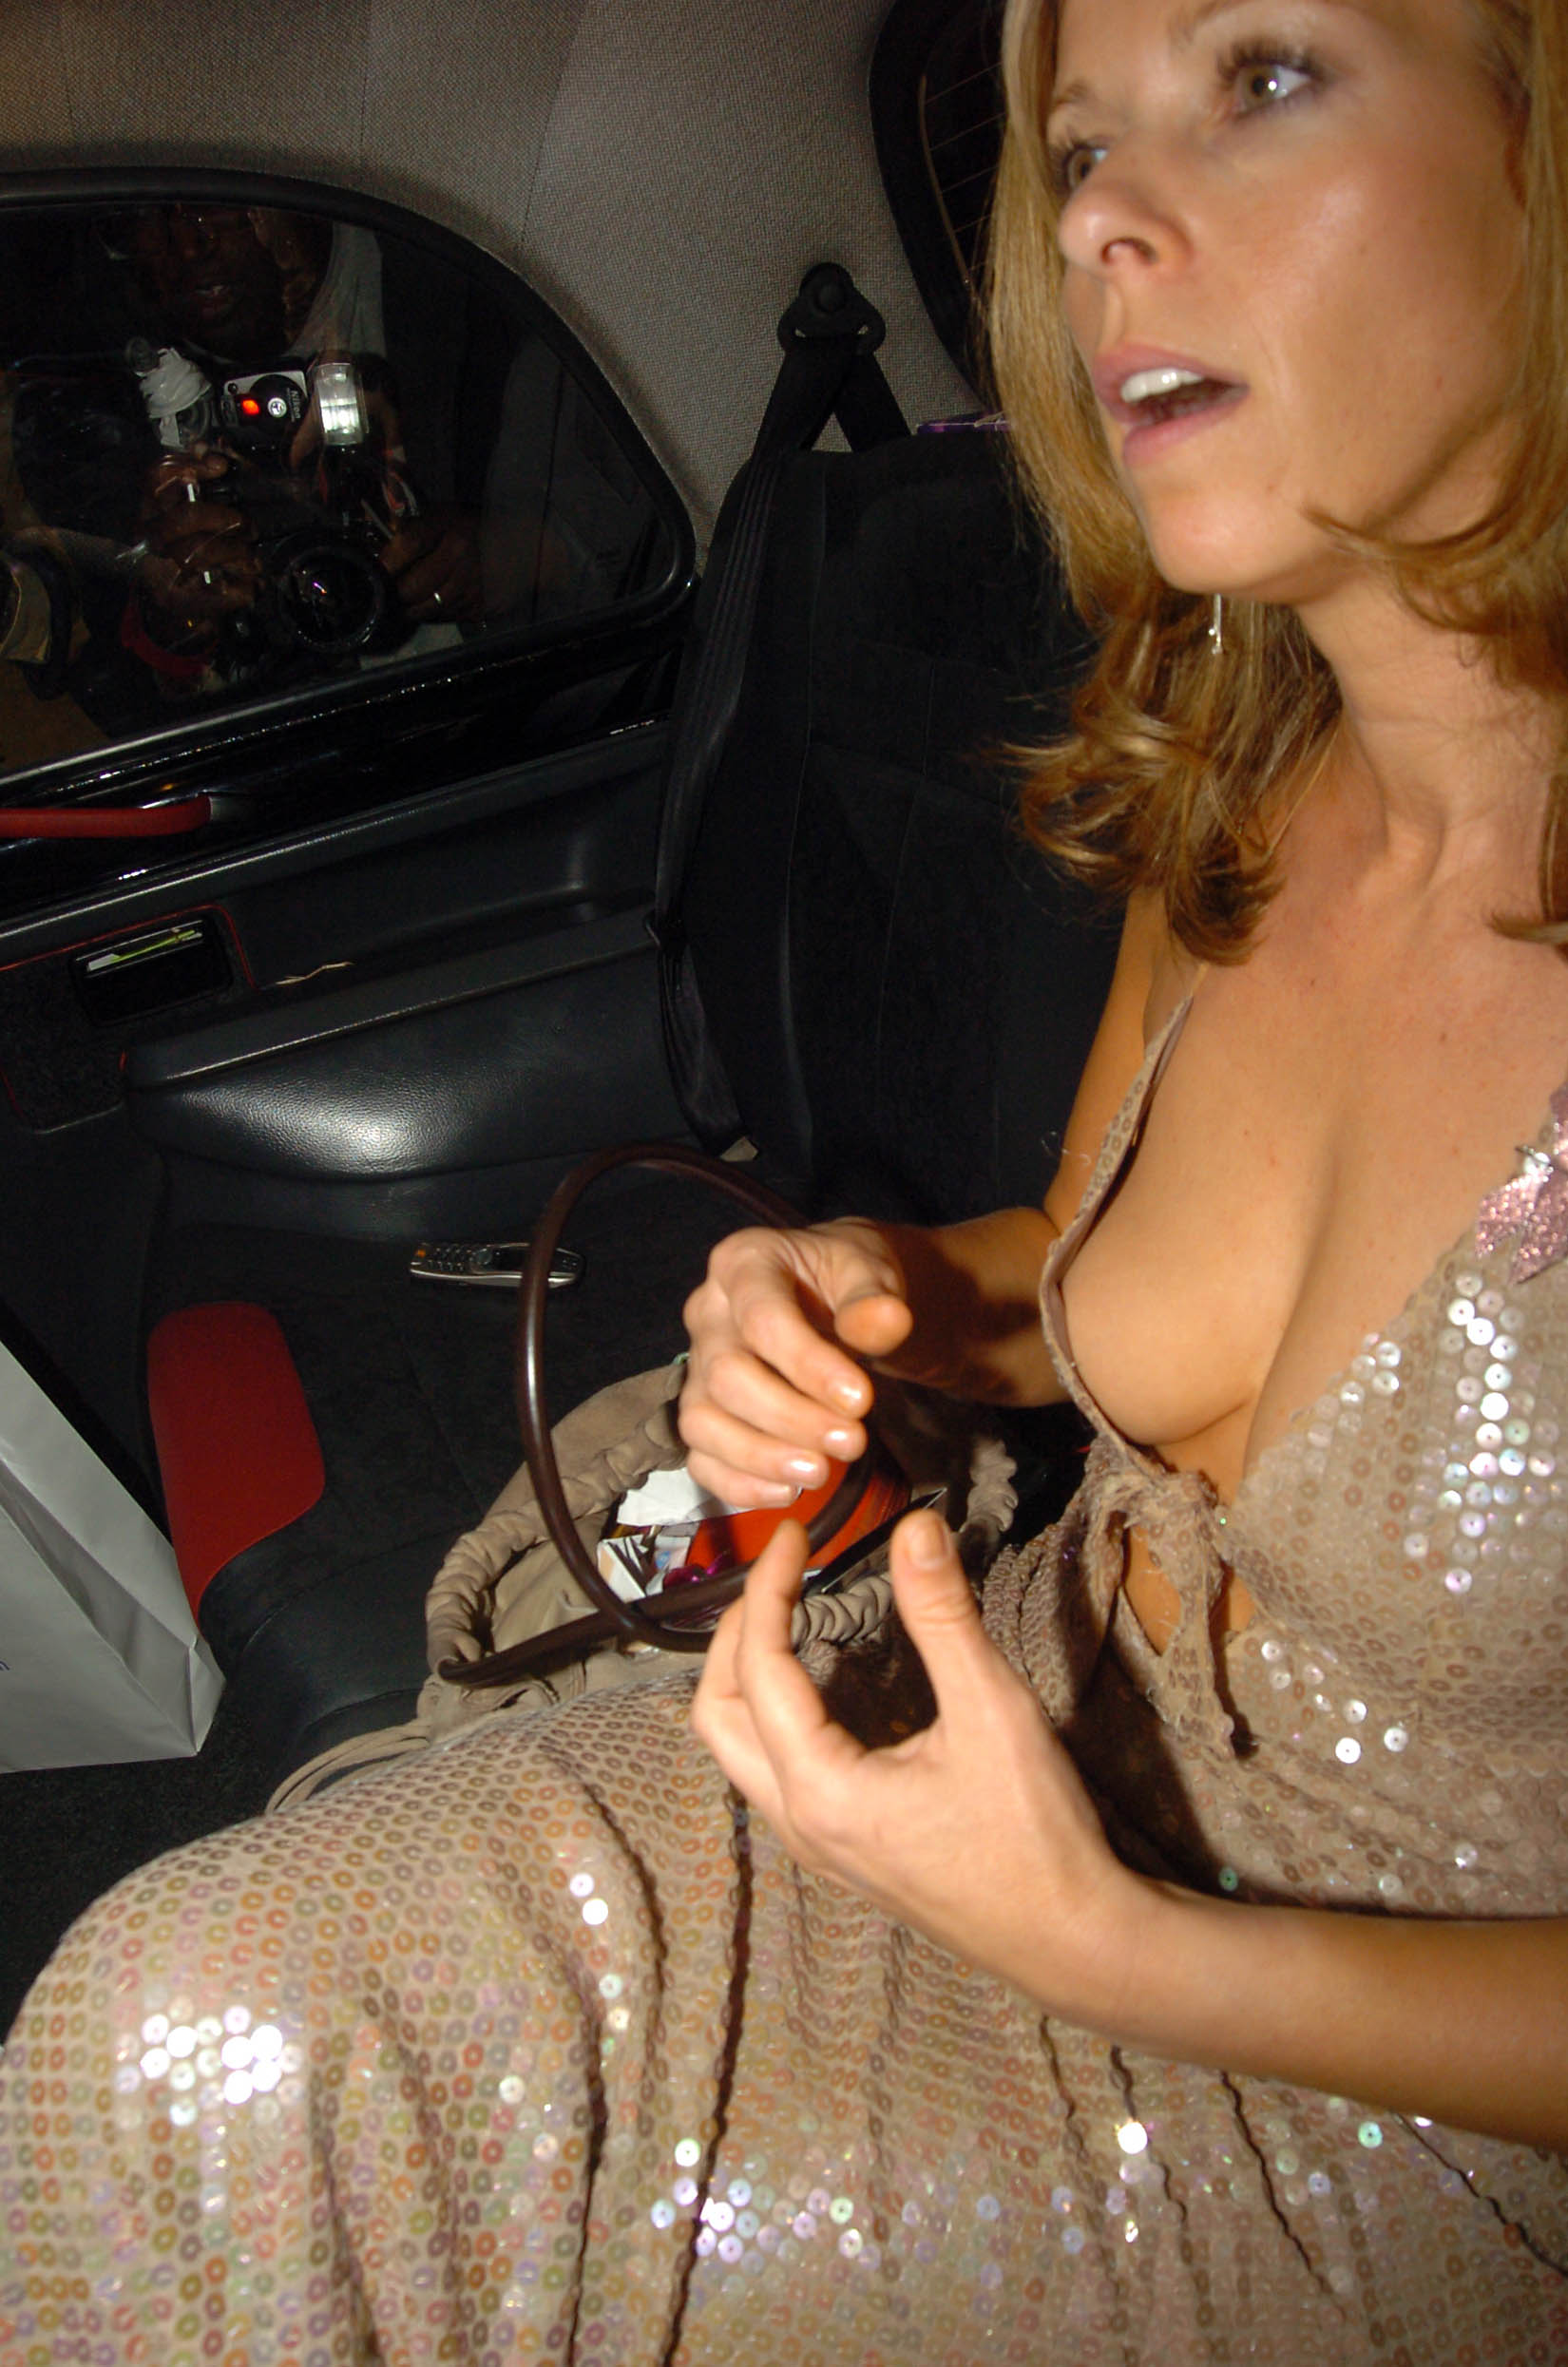 Penny smith upskirt mpegs